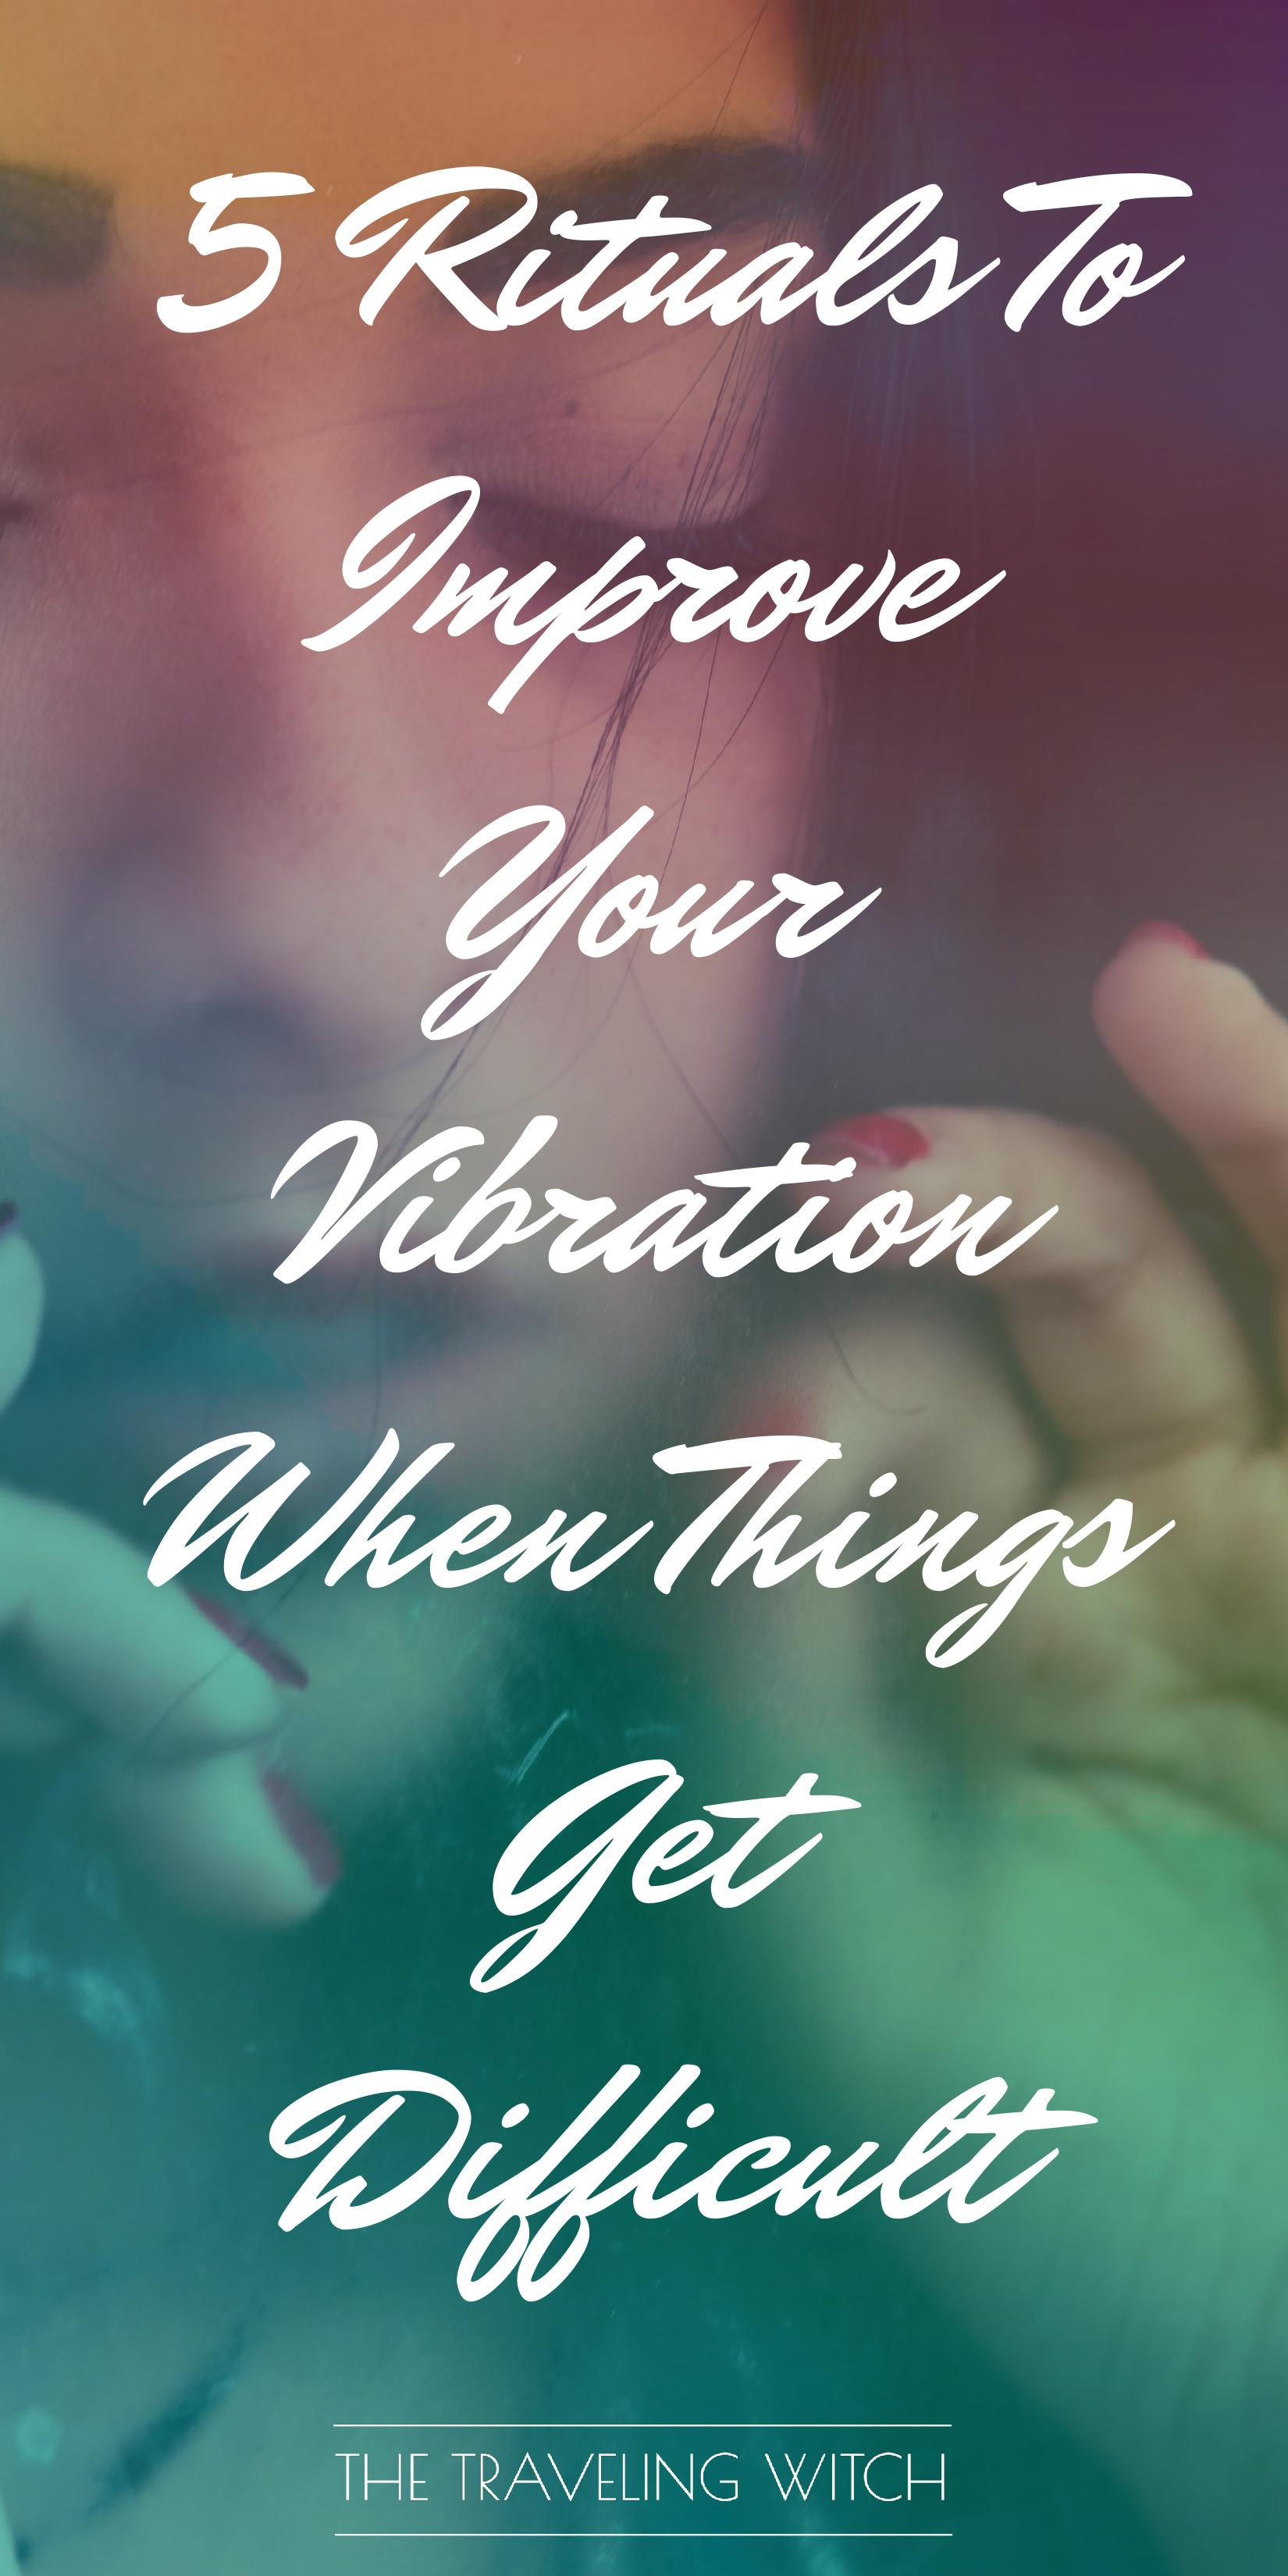 5 Rituals To Improve Your Vibration When Things Get Difficult // Witchcraft // Magic // The Traveling Witch